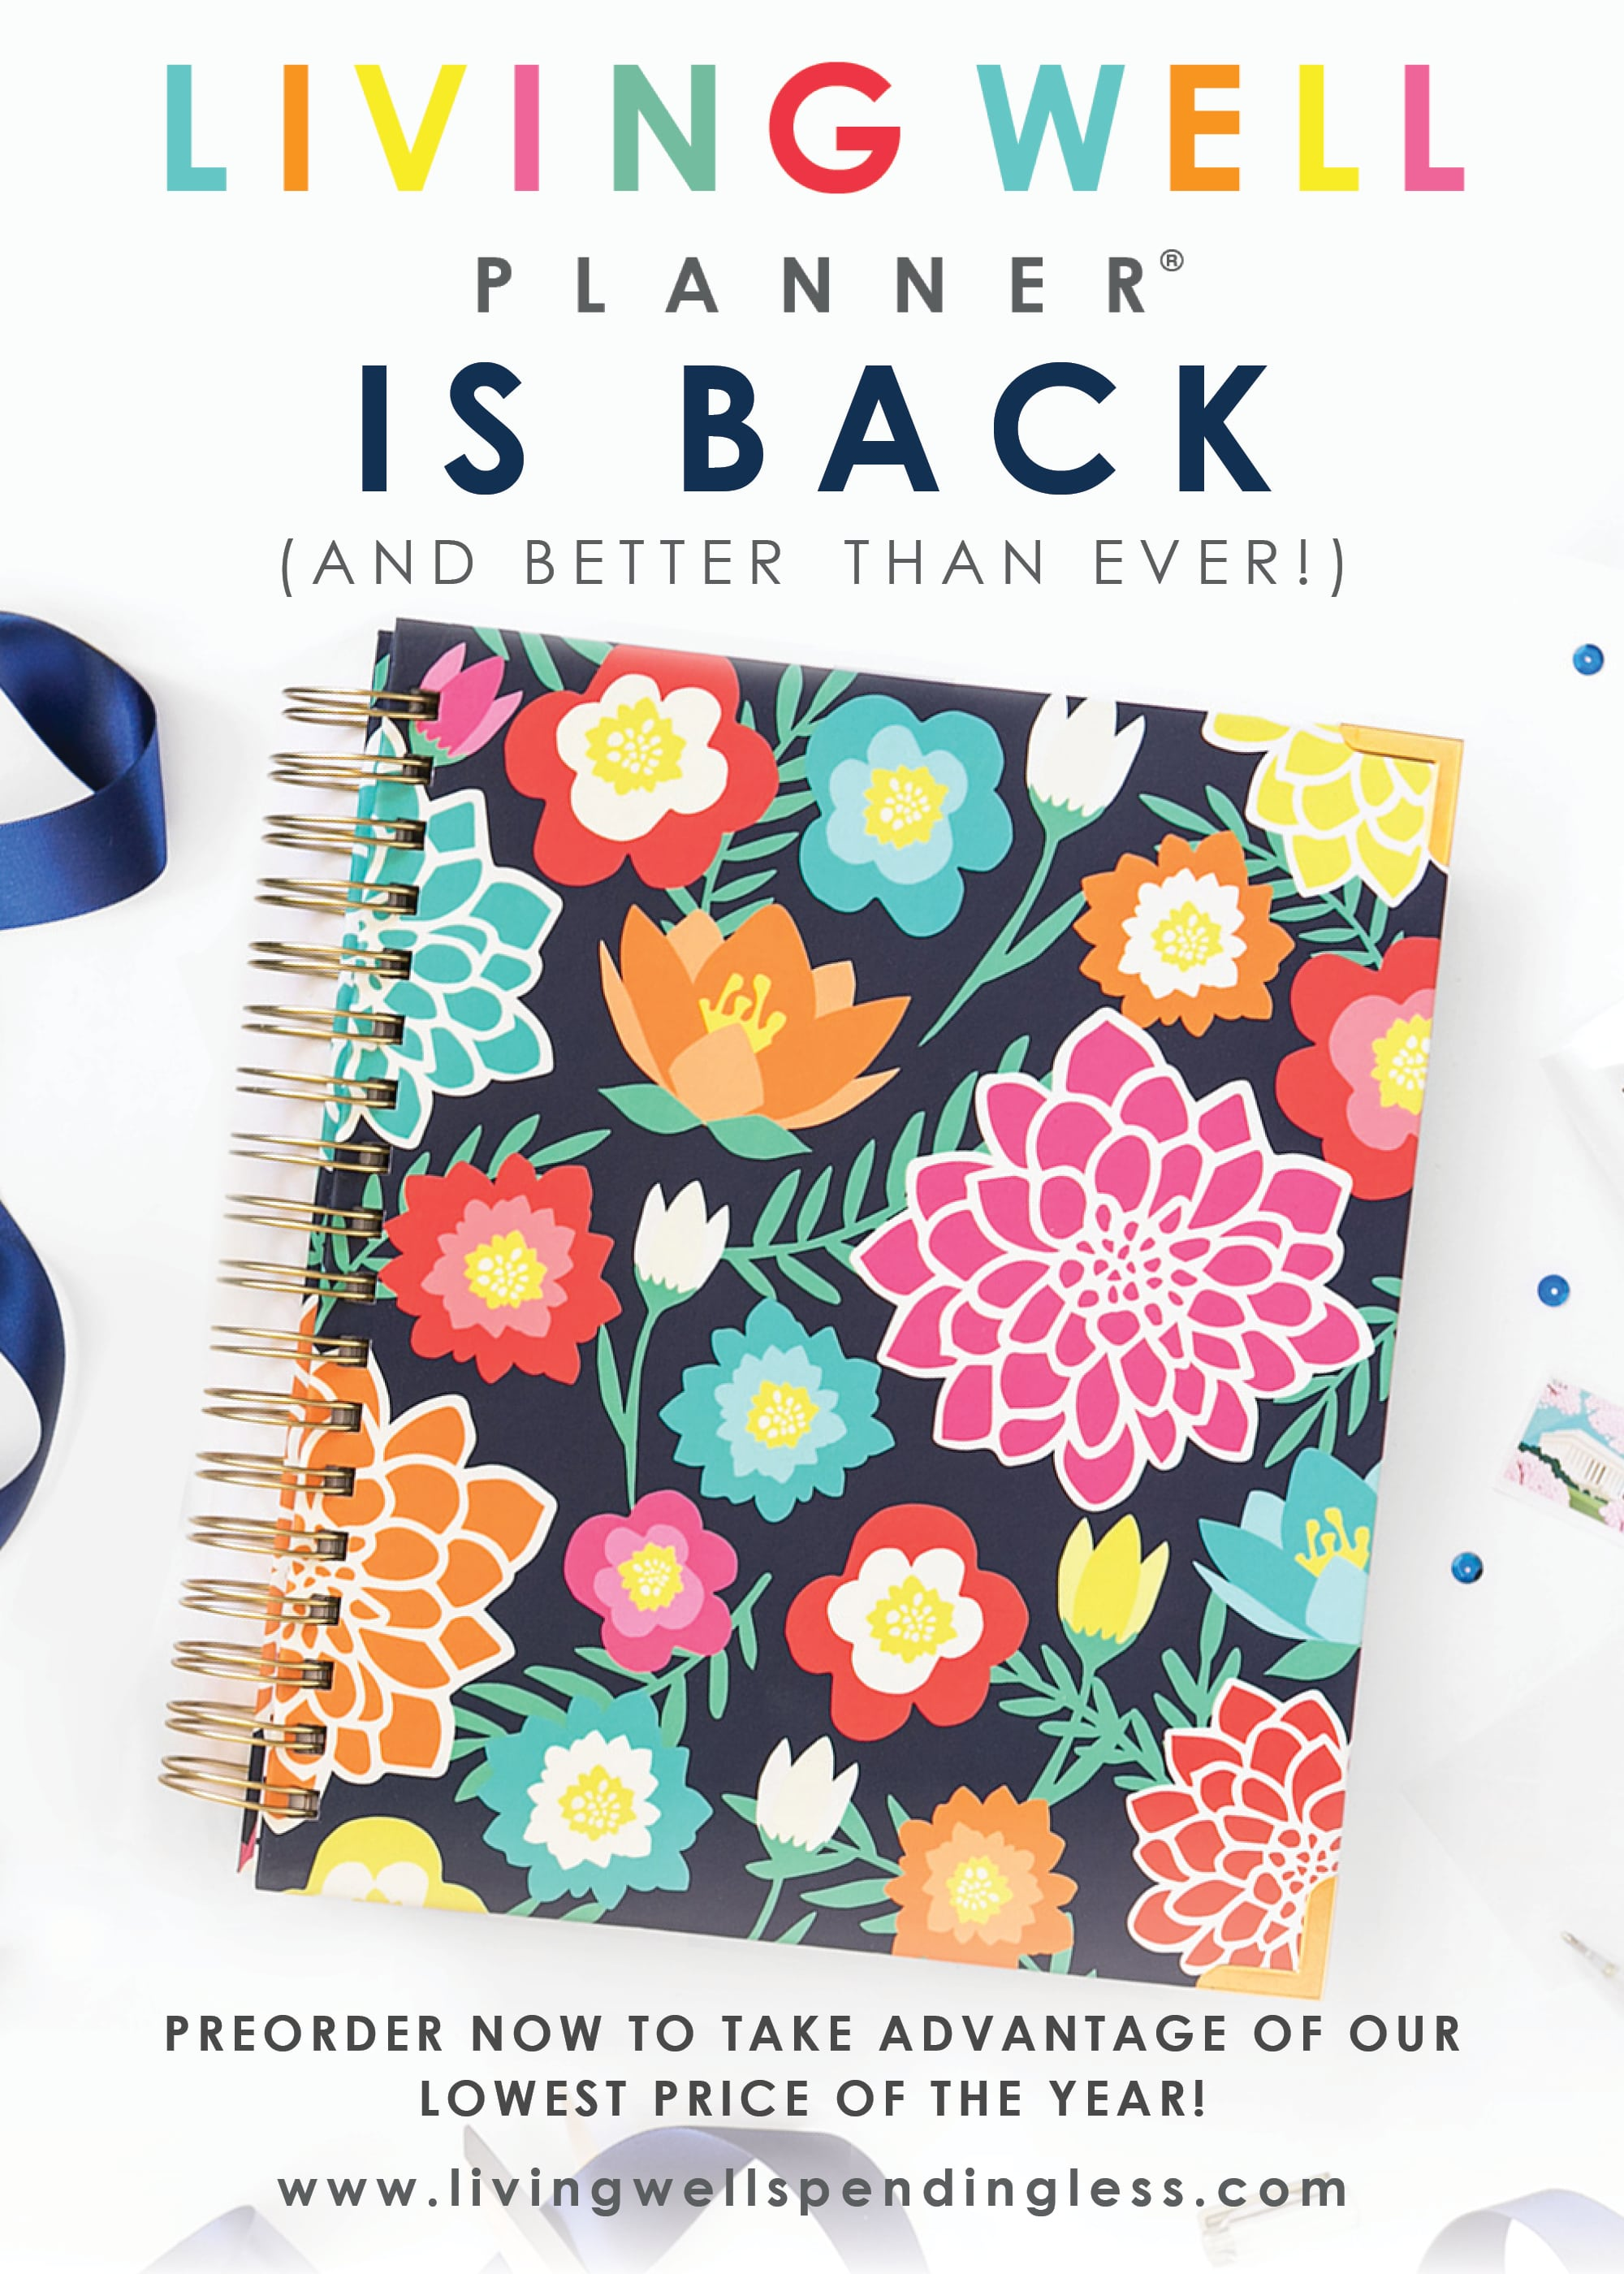 Our fresh new Living Well Planner® is now available for pre-order, and we can't WAIT to share it with you!  In fact, we are pretty sure our latest edition is going to knock your socks off!  Keep reading to find out more about what the next generation of the life-changing Living Well Planner® will include, how you can get your hands on one, and how you can take advantage of our lowest price of the entire year (plus get 2 AWESOME free gifts with your purchase!)